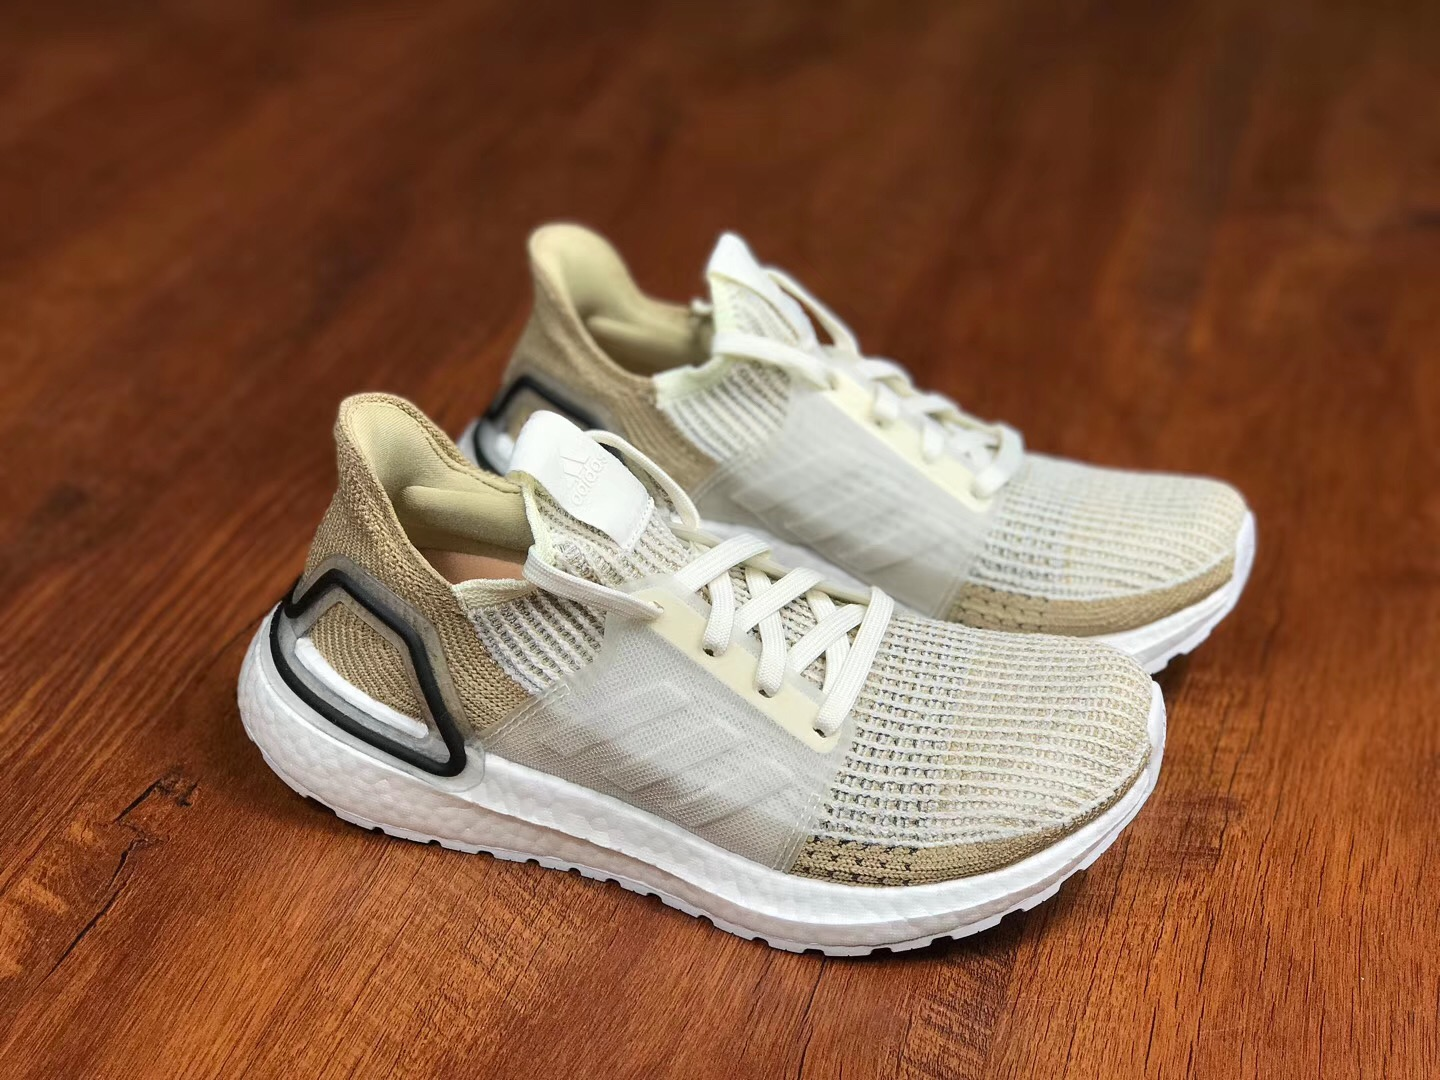 Giày ultraboost 19 chalk white